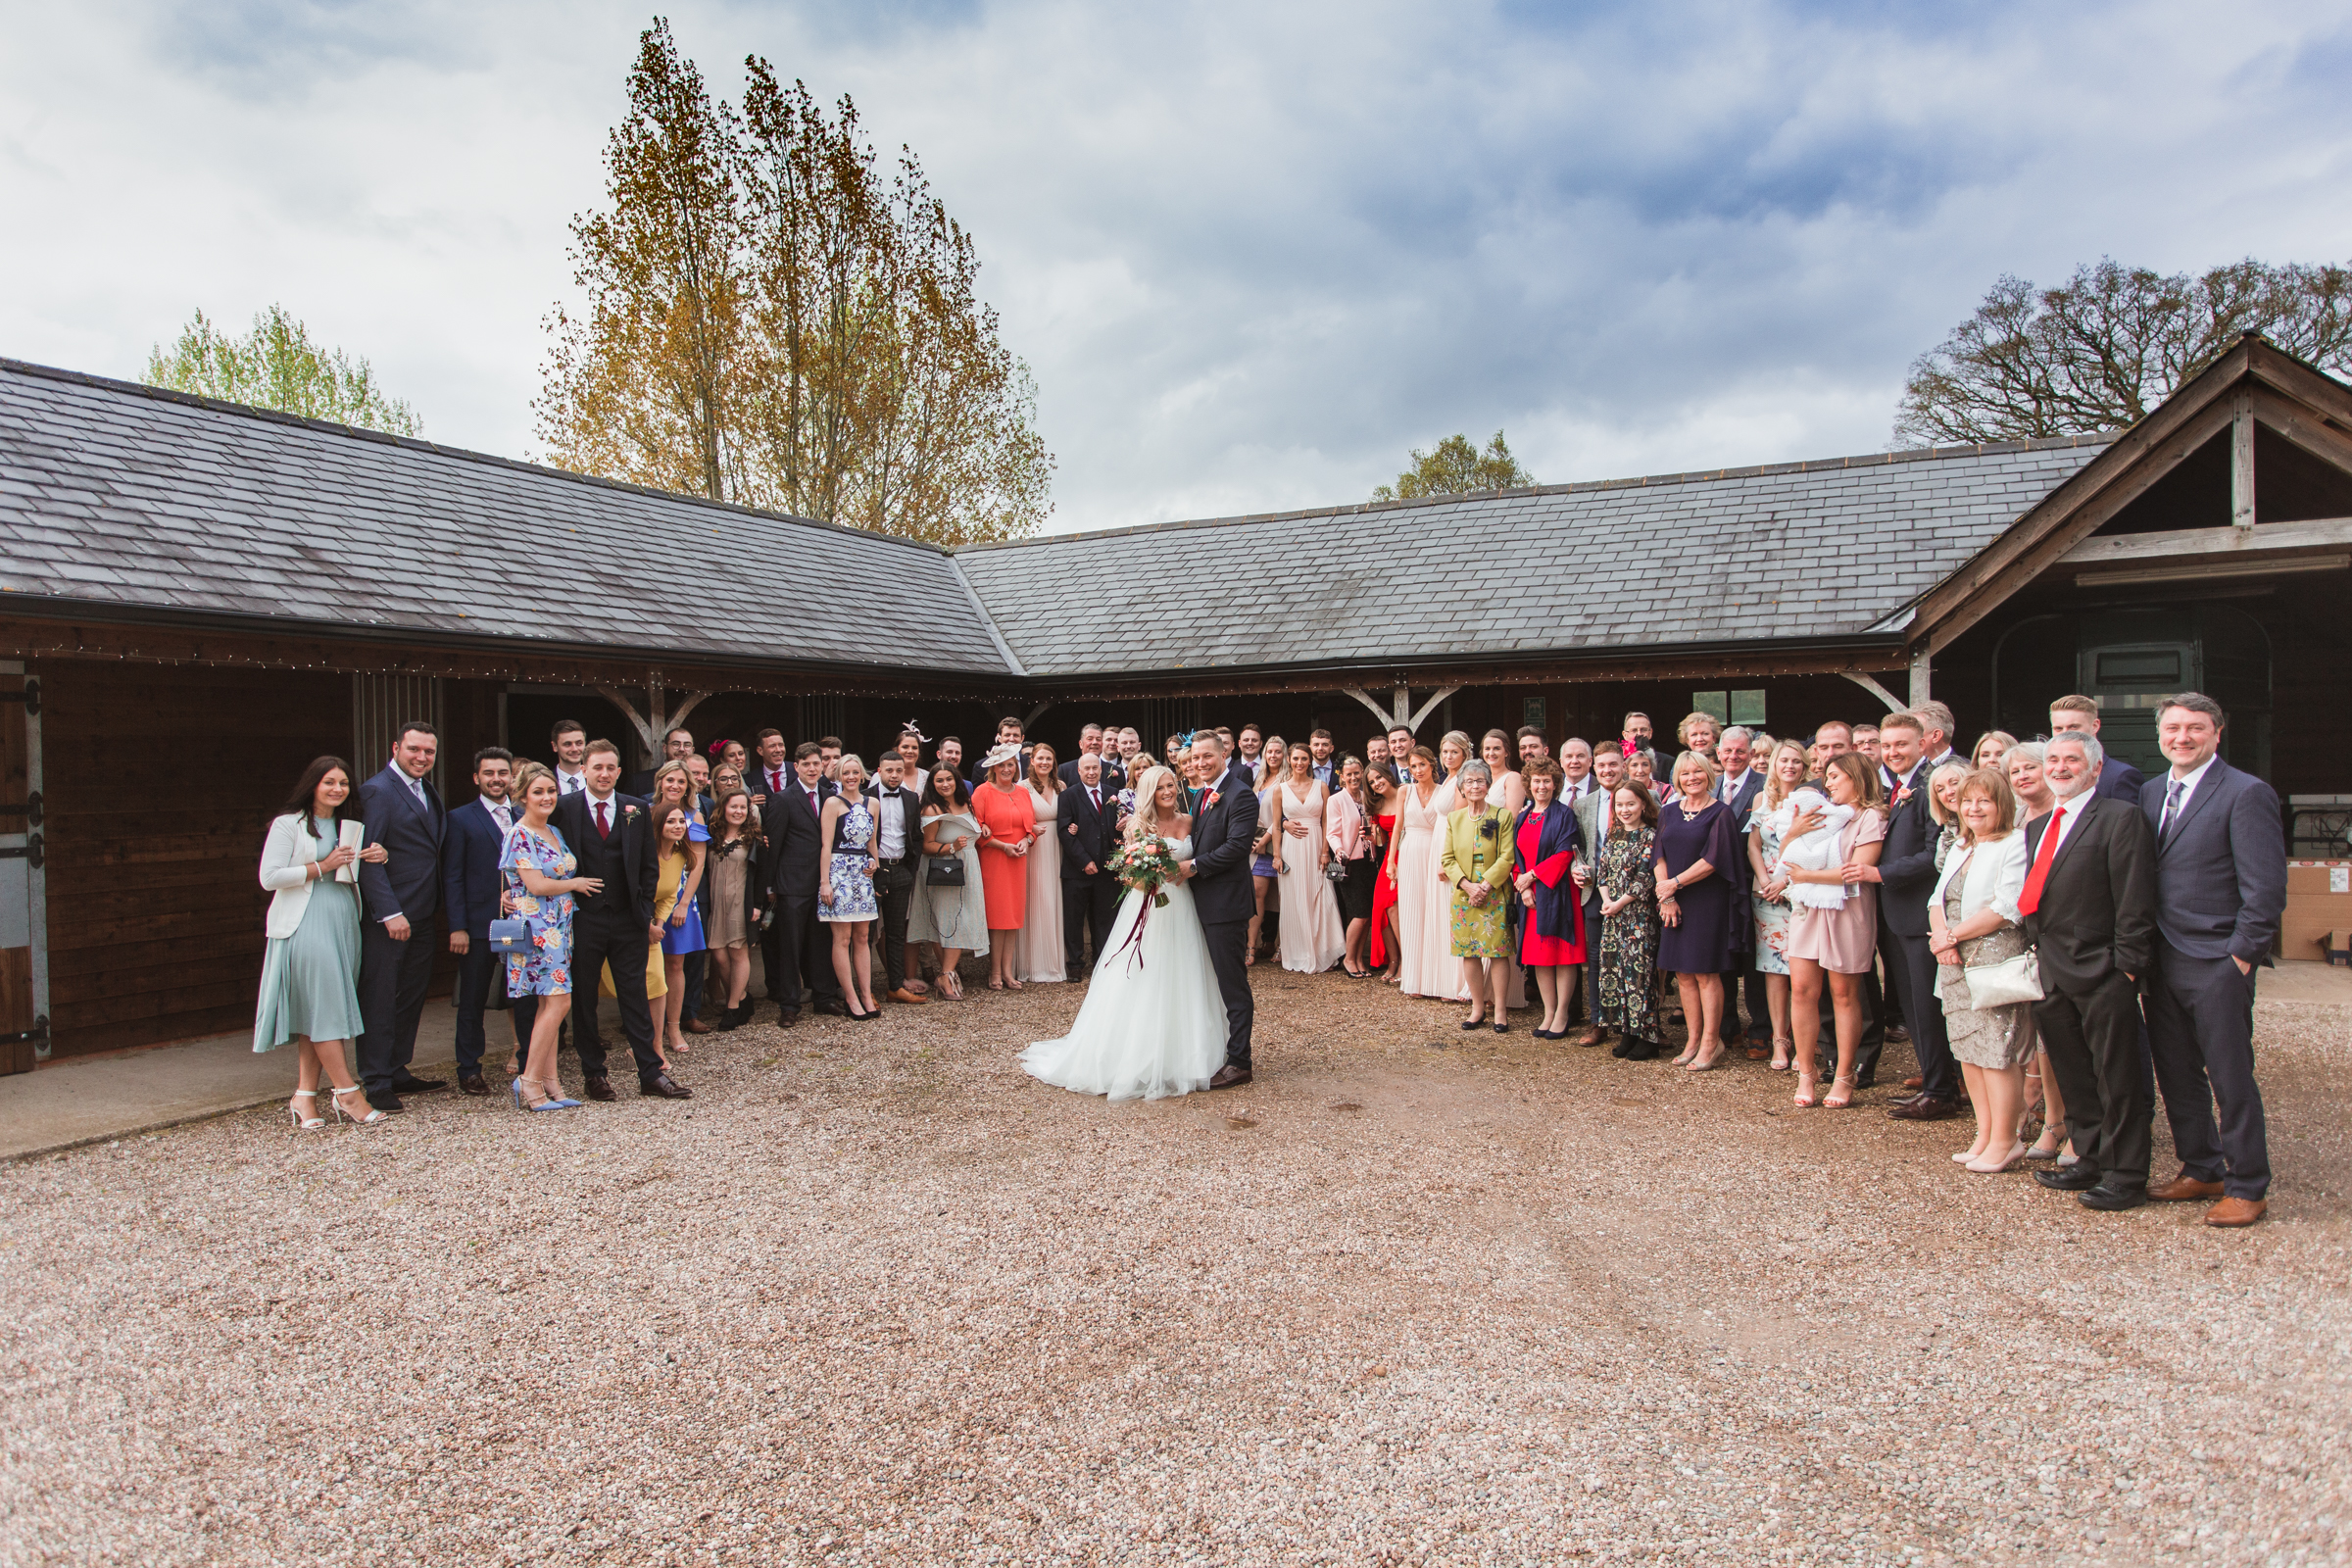 Colby and Kat in front of the barn at Manor Hill house in Bromsgrove, they are surrounded by all of their friends and wedding guests.